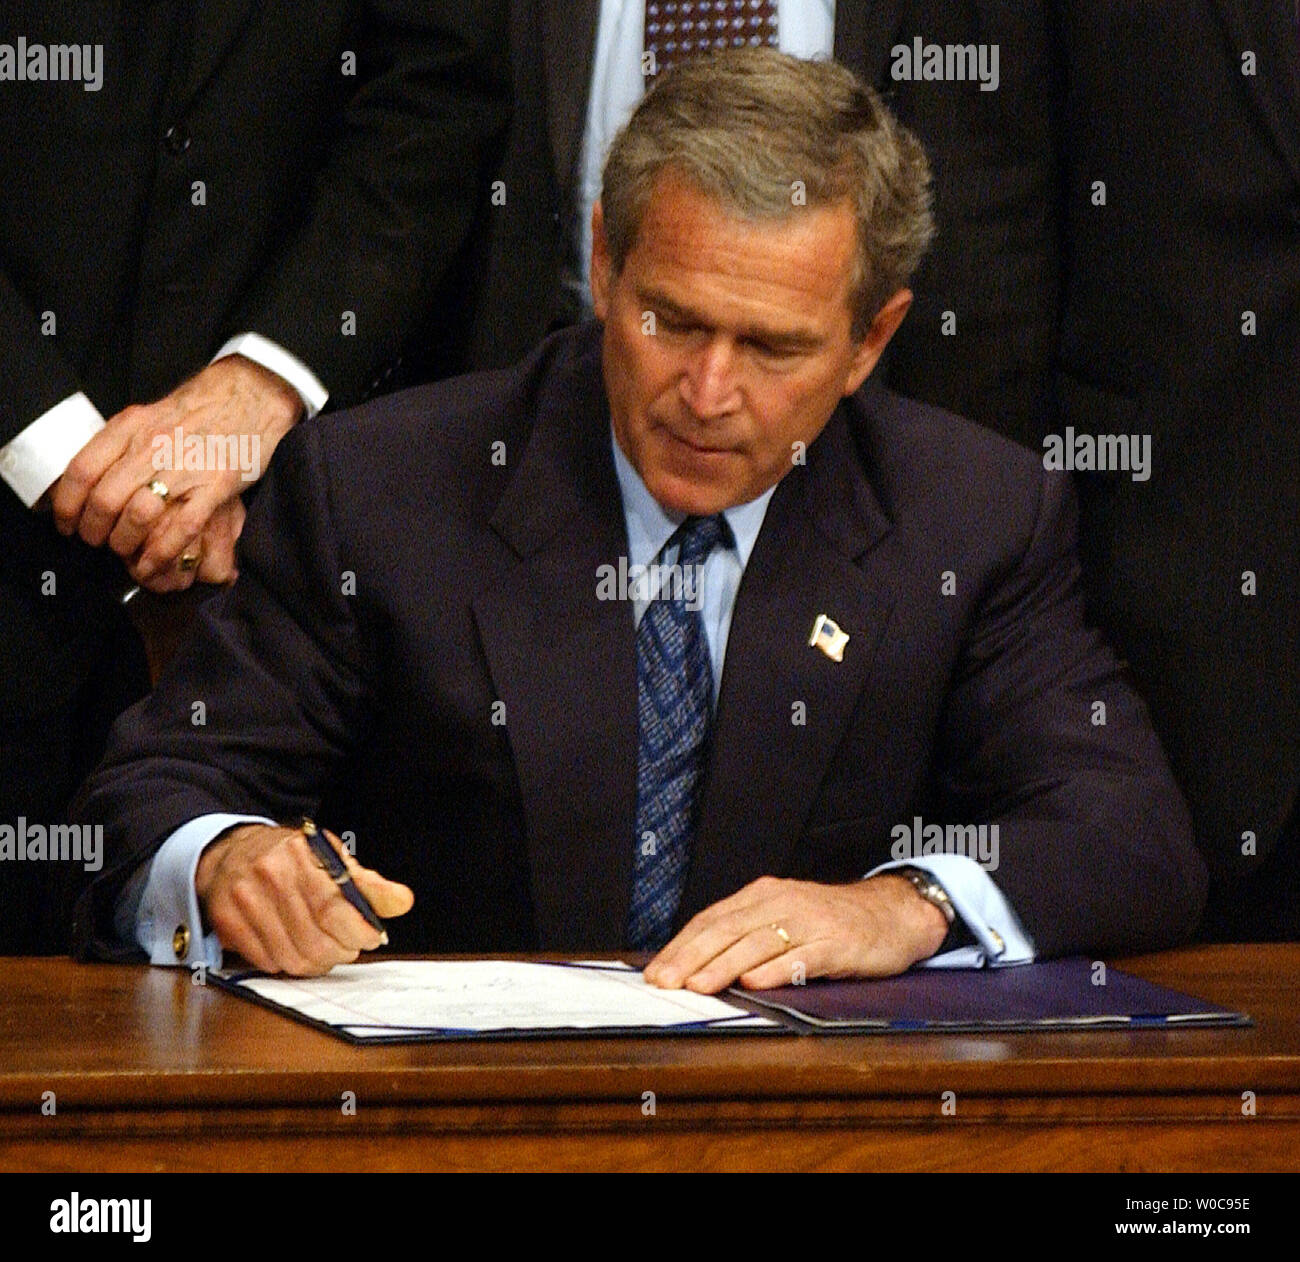 President George W. Bush signs a bill banning partial birth abortions on November 5, 2003, in Washington. In remarks the President said his administration would vigorously defend the legality of the bill.    (UPI/Roger L. Wollenberg) Stock Photo